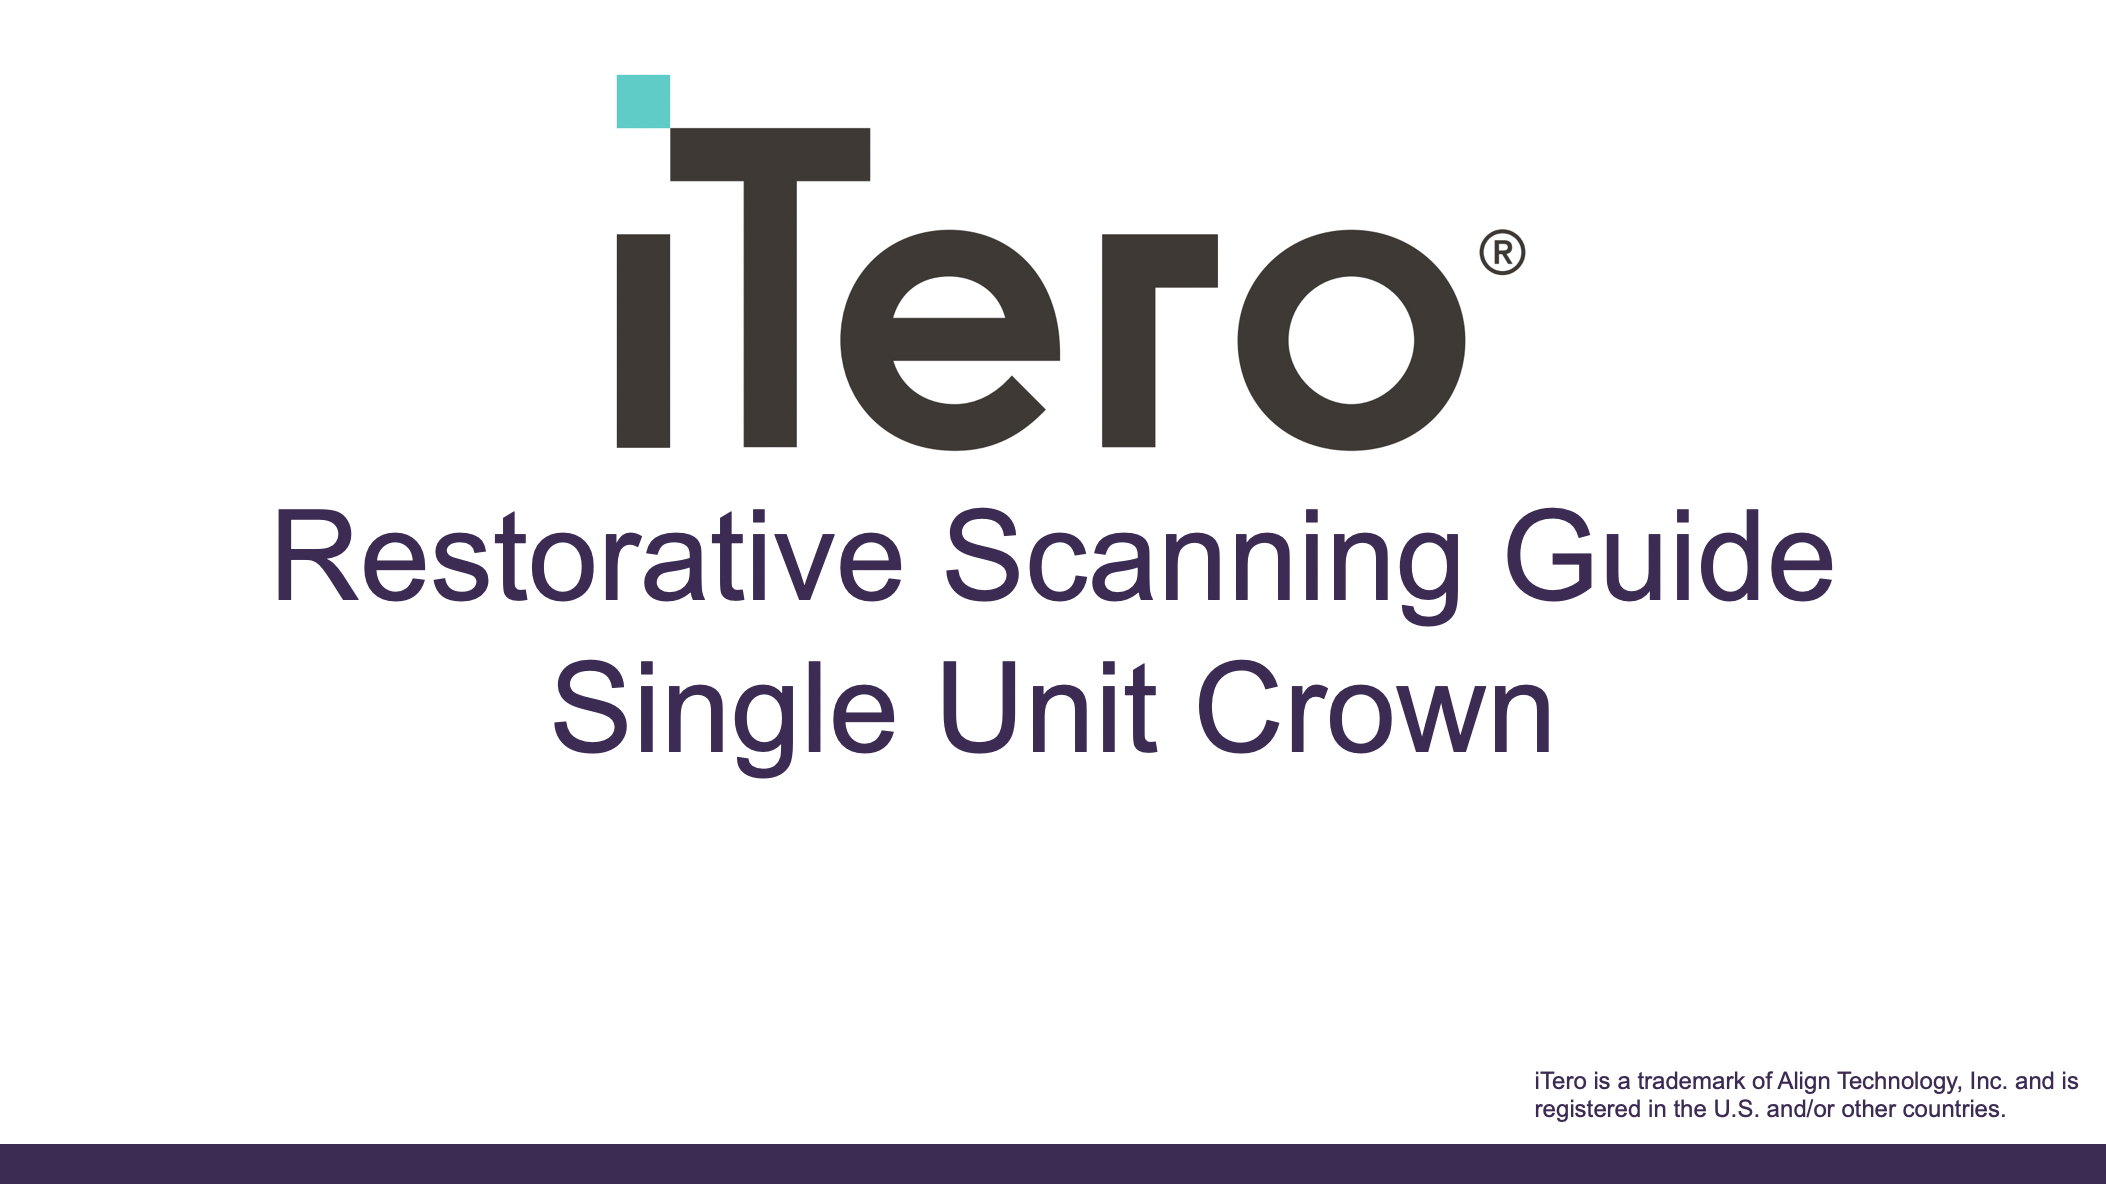 Step-by-step restorative scanning guide for a single unit crown.